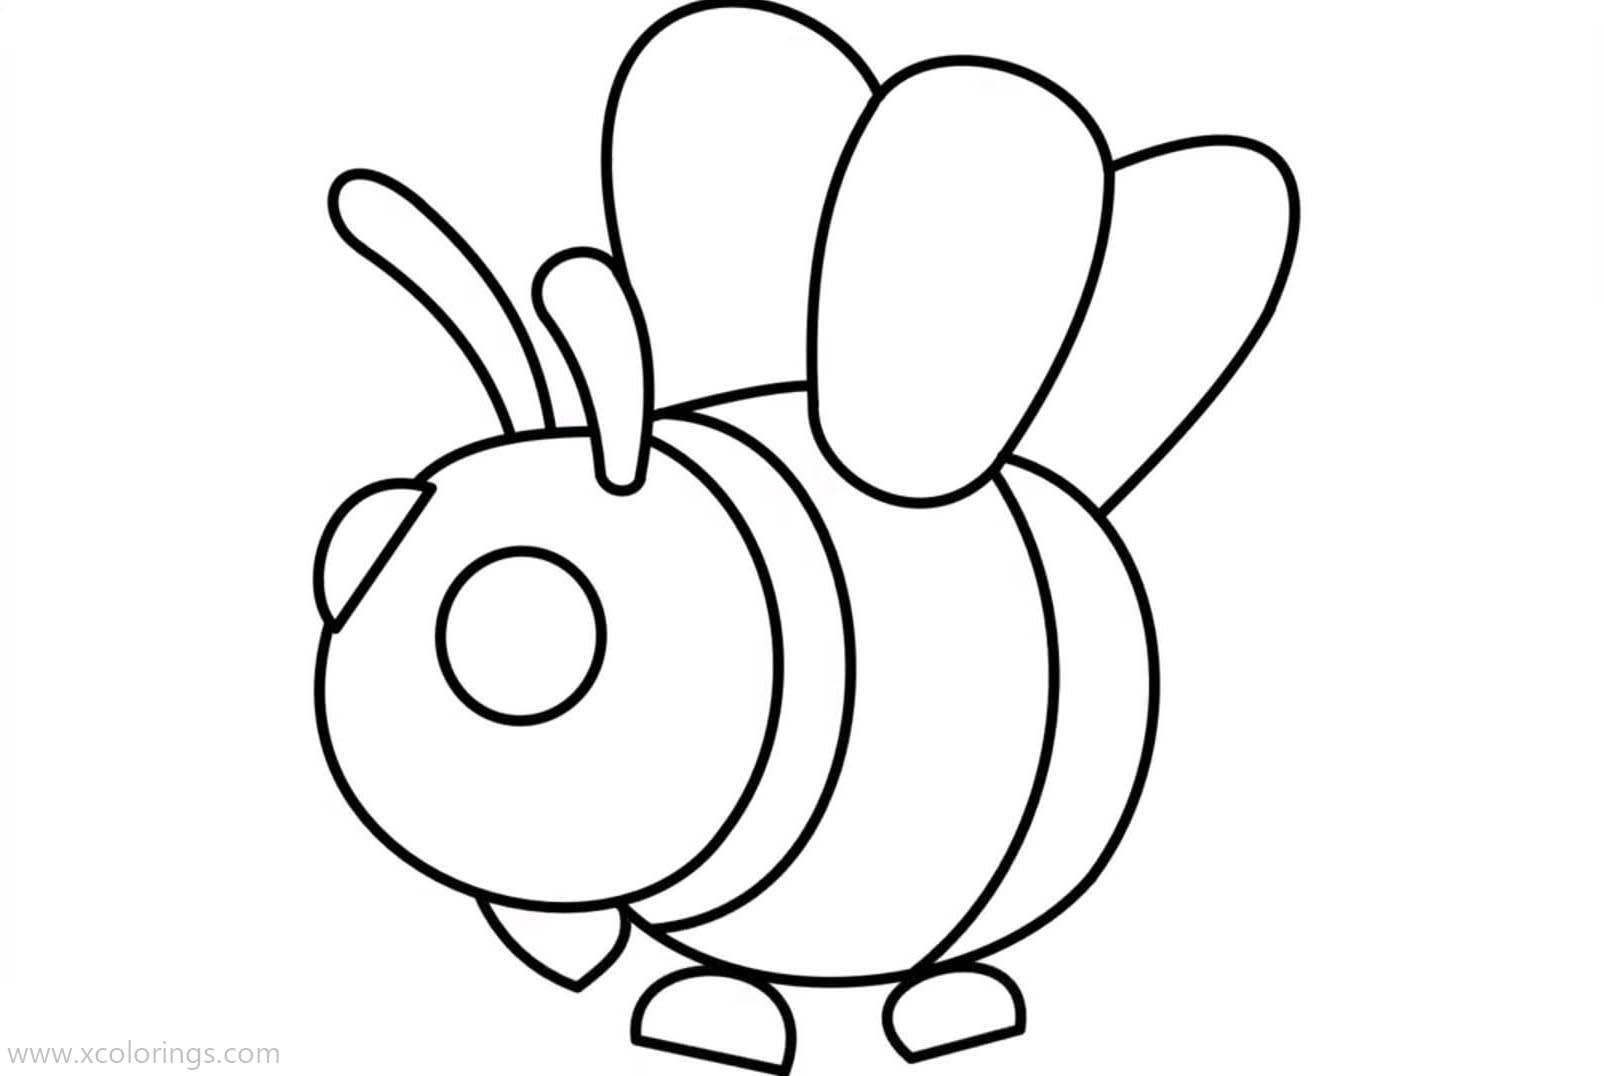 Roblox Adopt Me Coloring Pages Bee Pets Drawing Coloring Pages Bee Coloring Pages